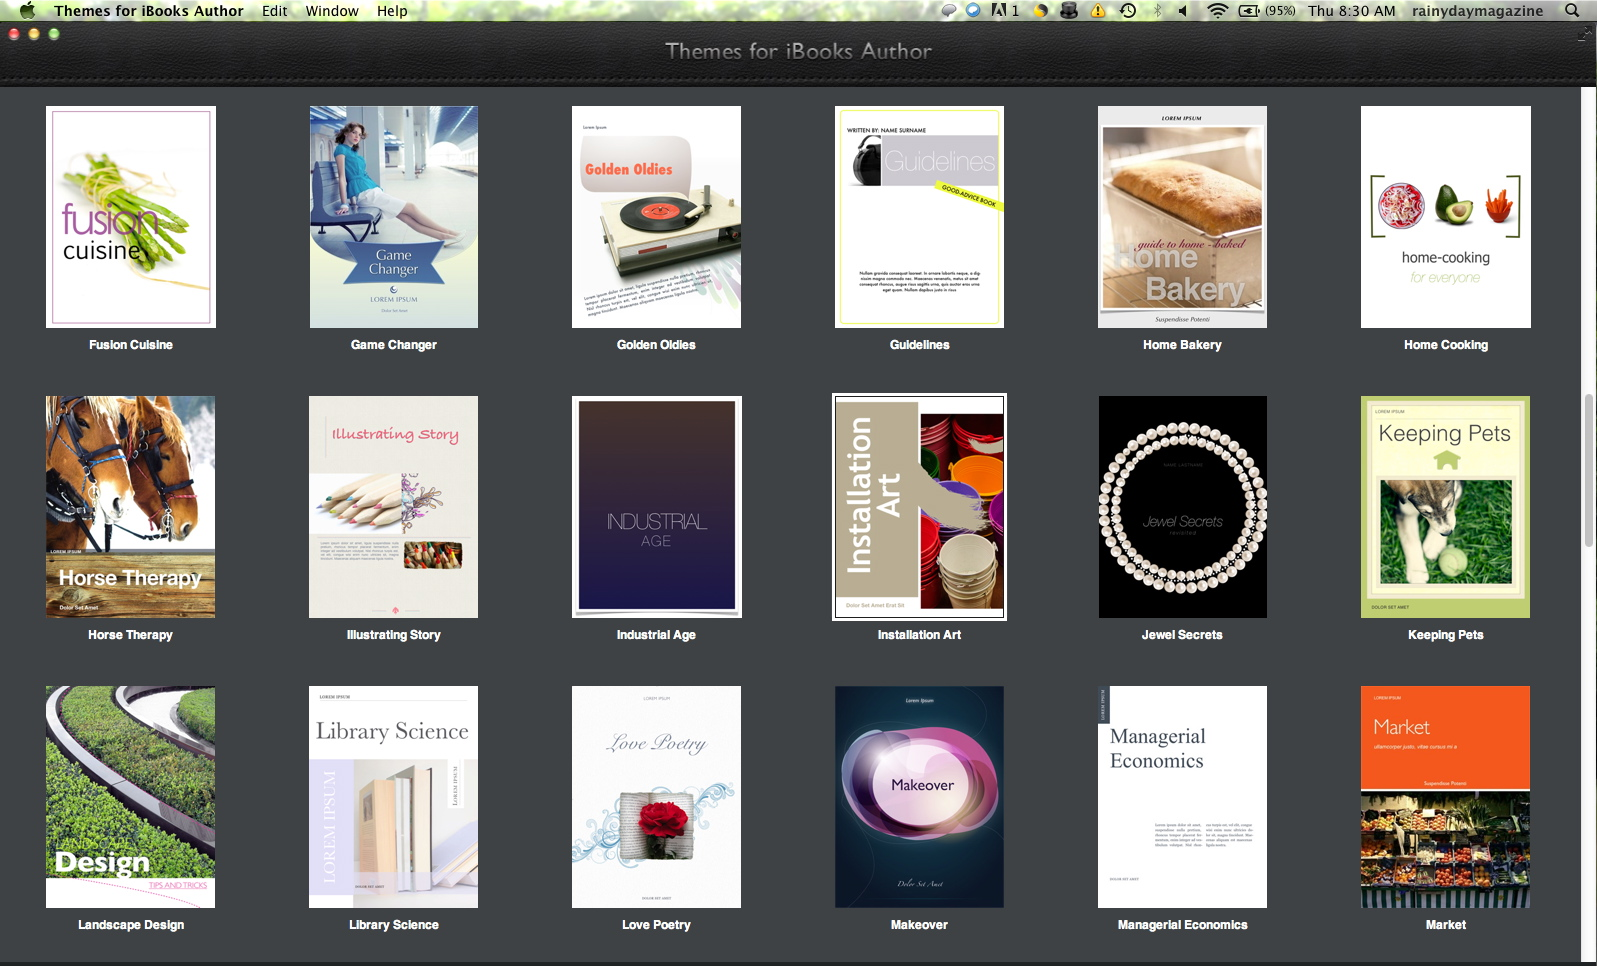 More iBooks Templates | RainyDayMagazine